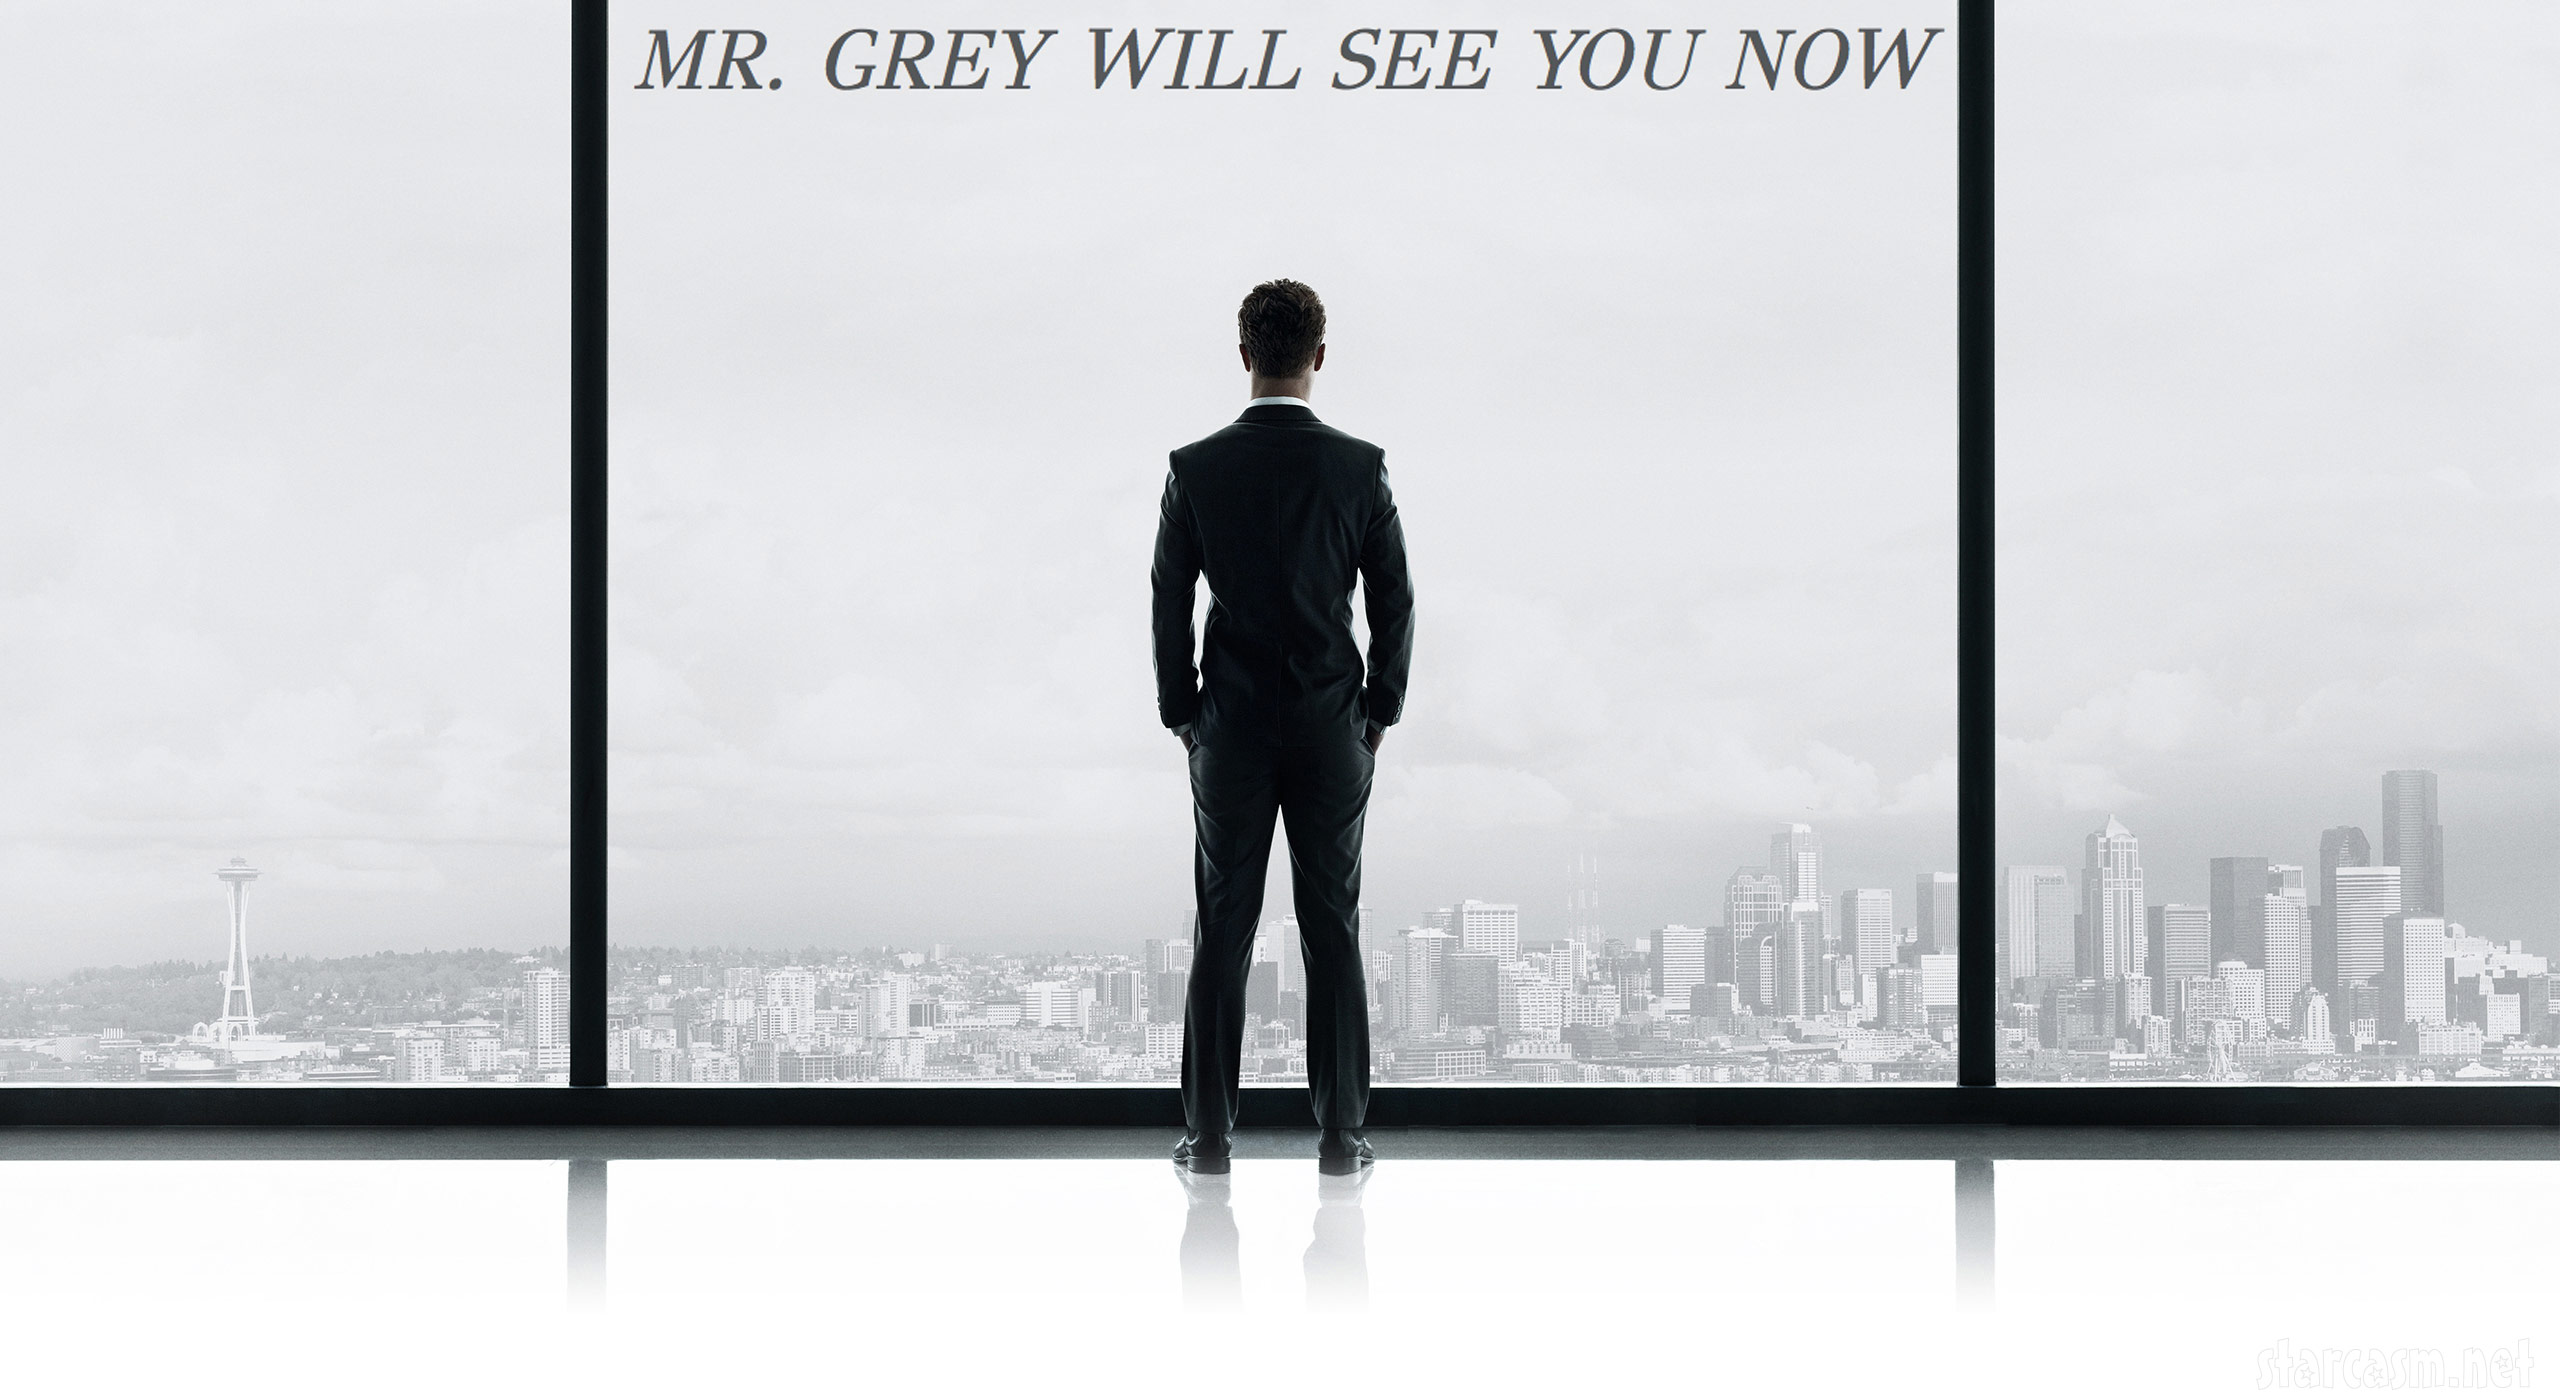 Shades Of Grey 1 Written Review Fifty Shades Of Grey 2015 Trilbee Reviews